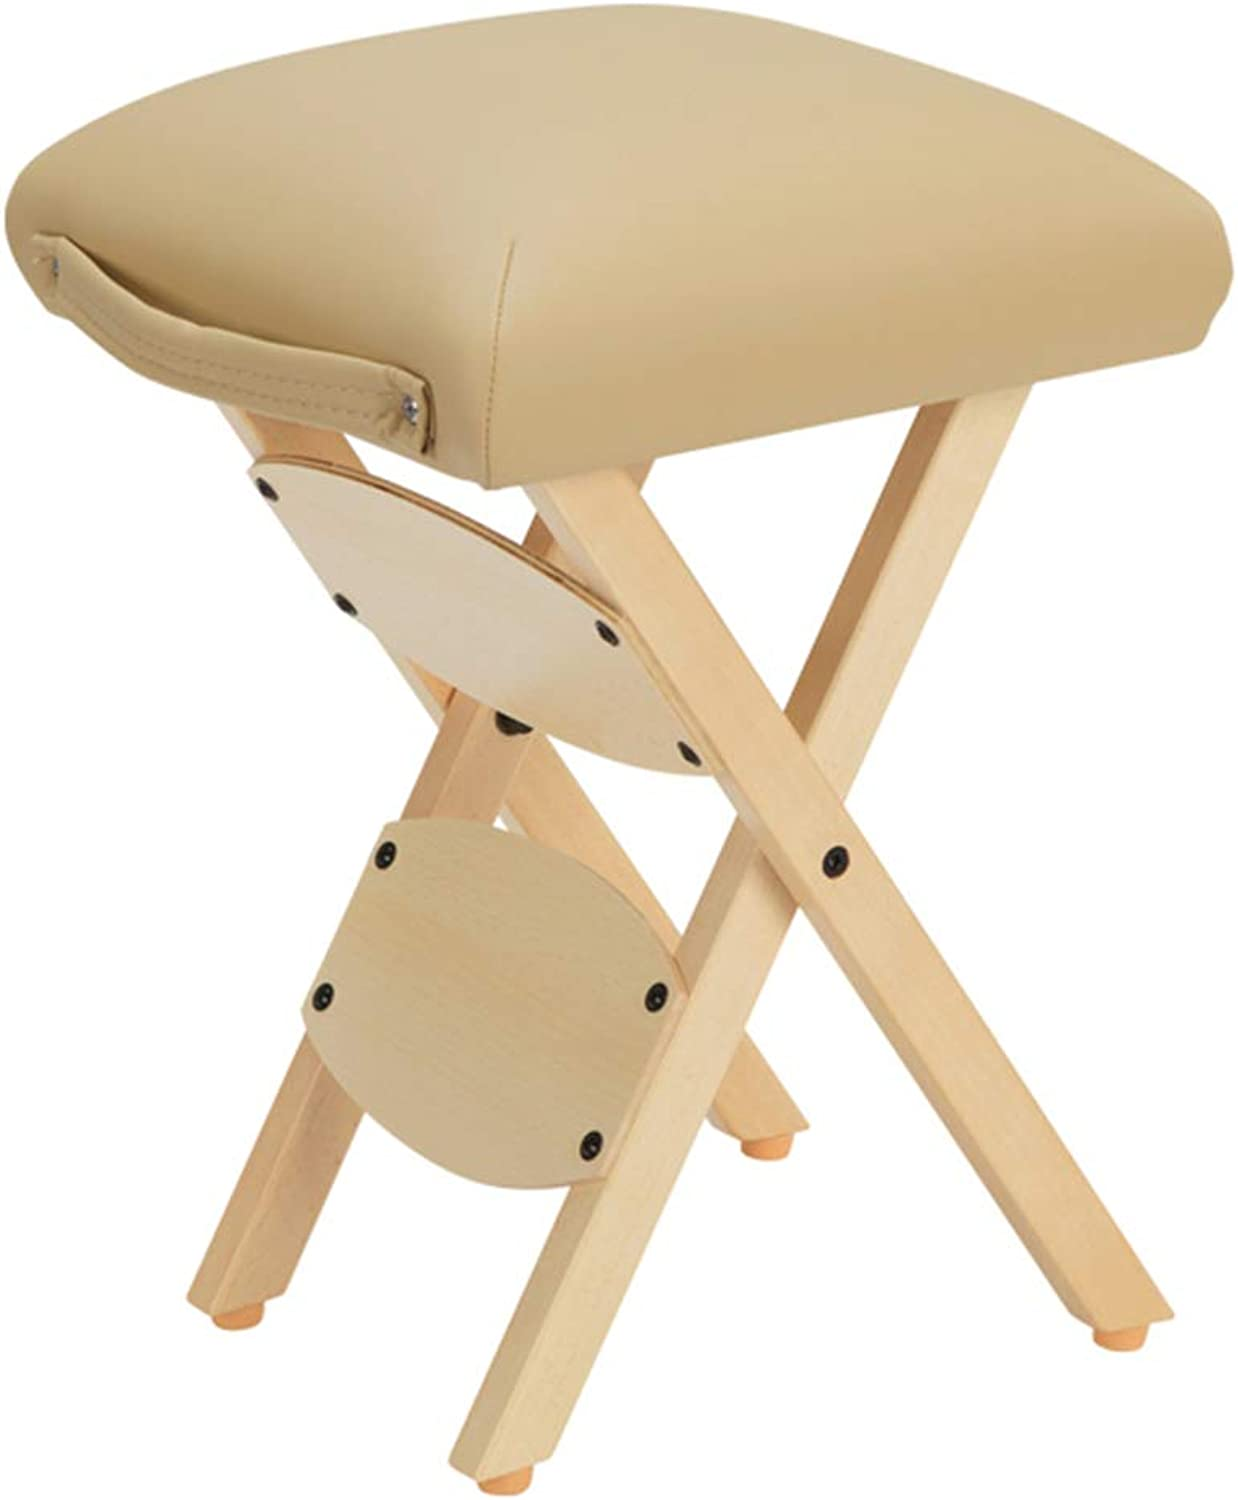 Folding Stool Folding Step Mazza Portable Stool Mazar shoes Stool Footstool Step Stool Adjustable Foot Rest Collapsible PU Cushion Shrink GAOFENG (color   Beige)